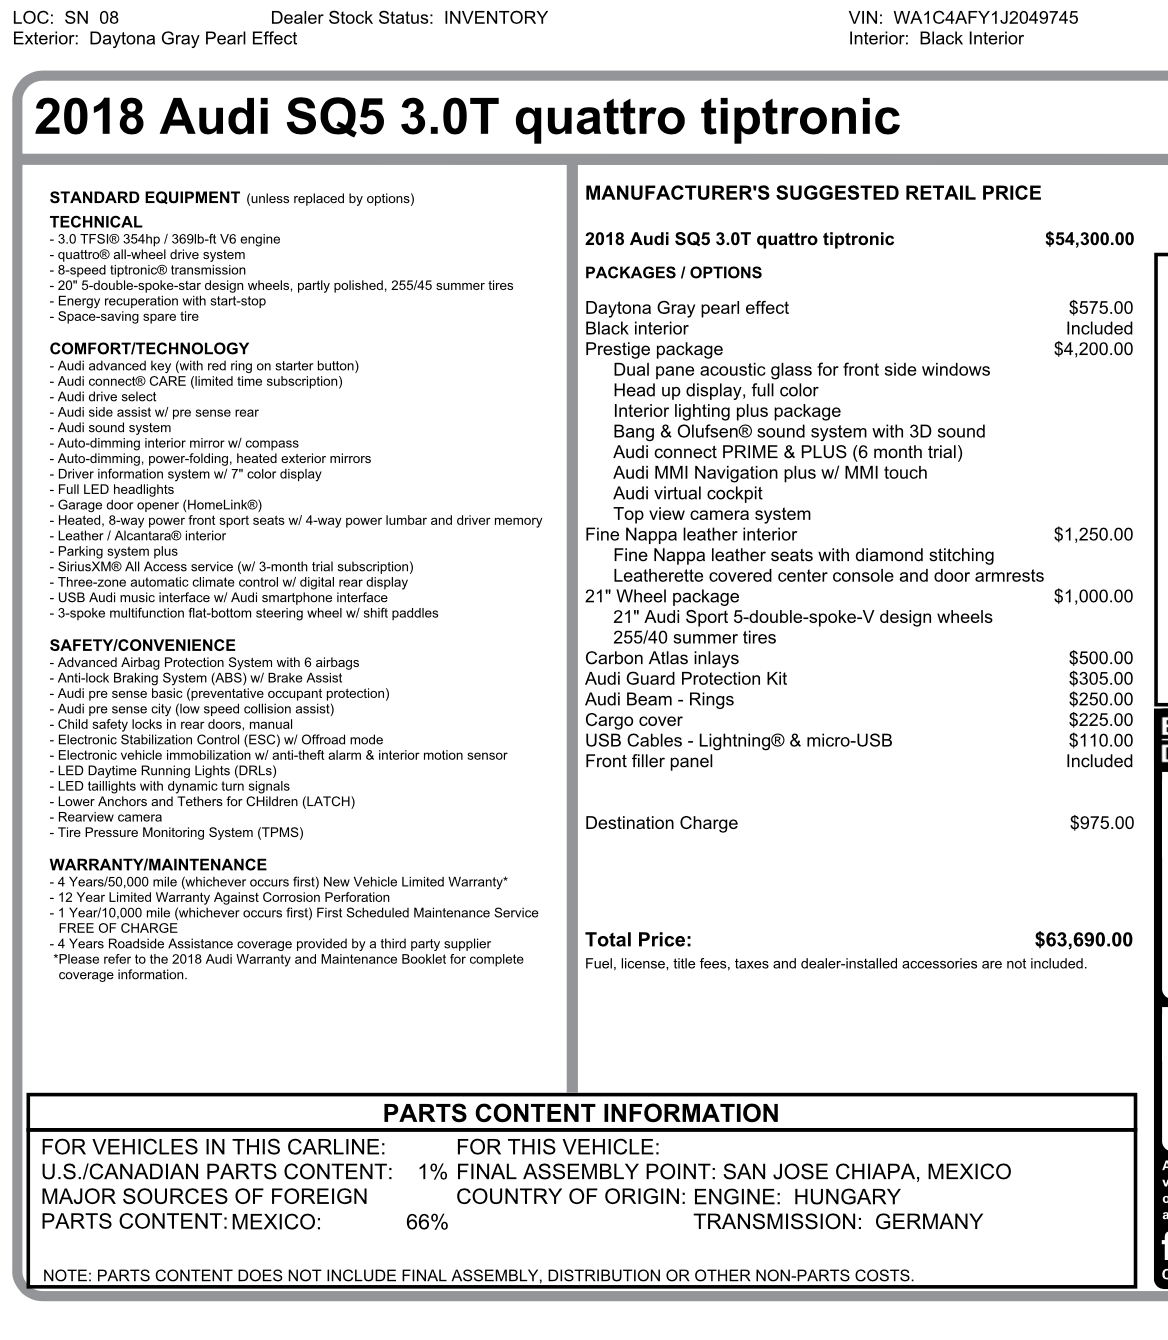 2018 Audi Q5 Lease Deals And Prices